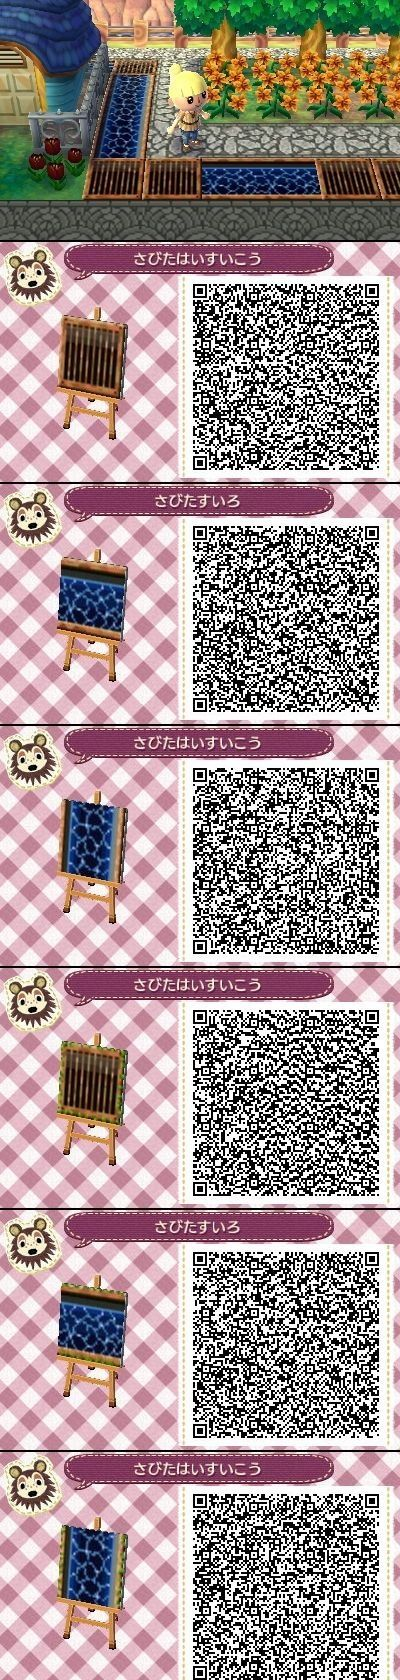 Animal crossing qr code floor paths boden wege Boden qr codes animal crossing new leaf